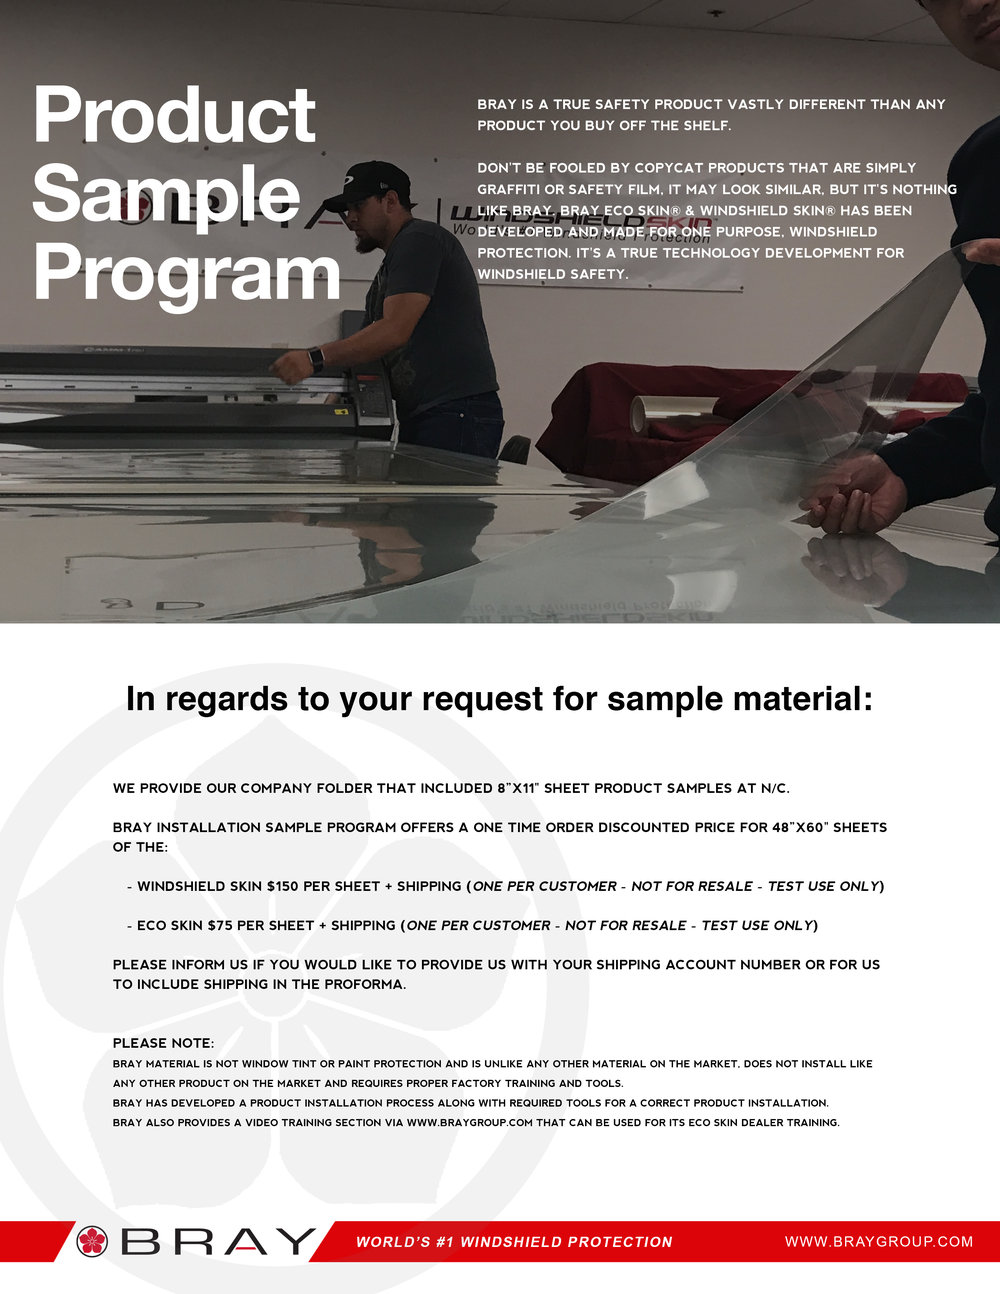 sales_sheet - Sample Program.jpg